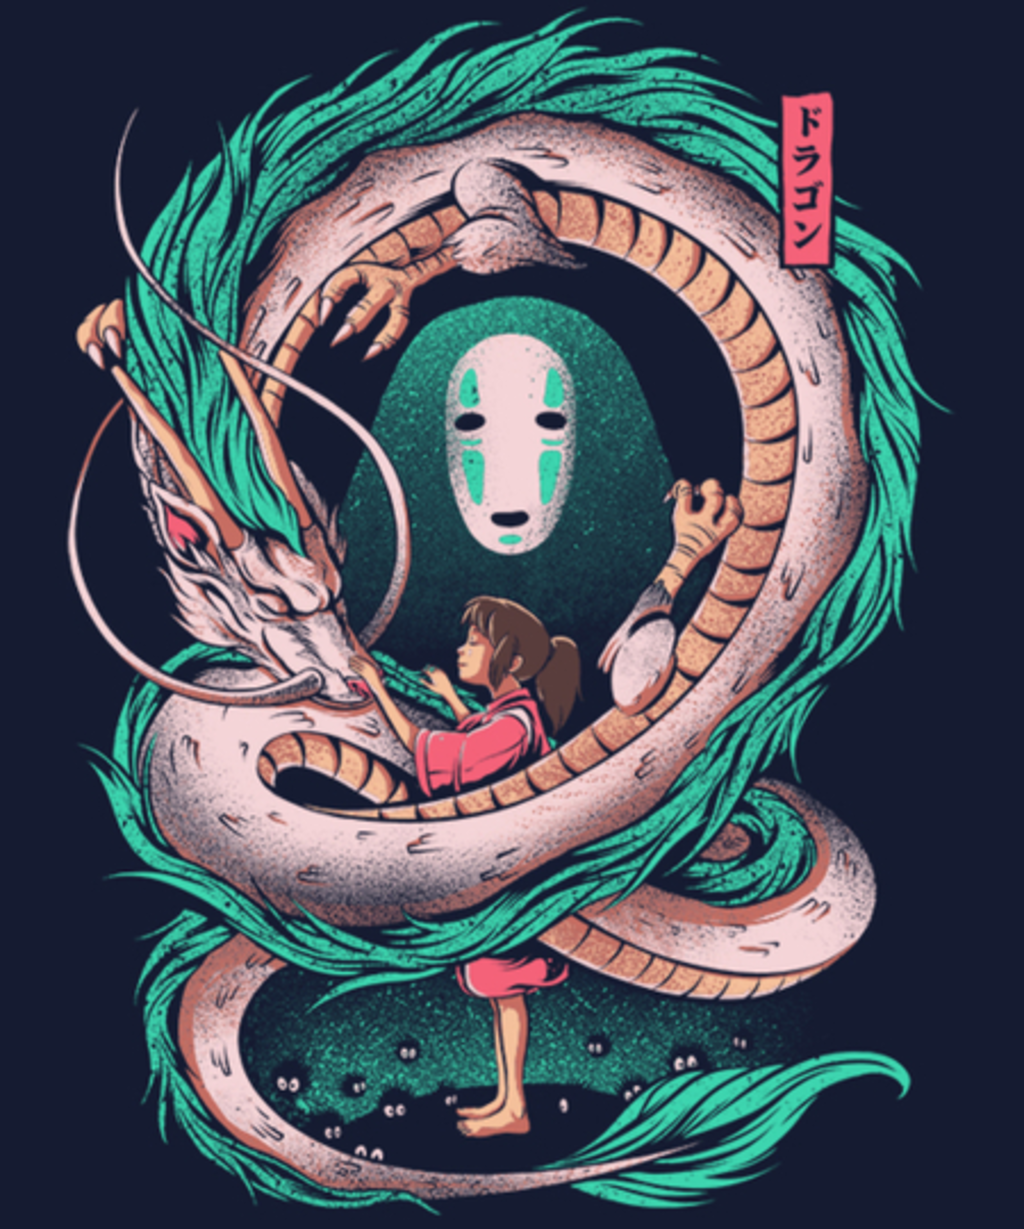 Qwertee: The Girl and the Dragon